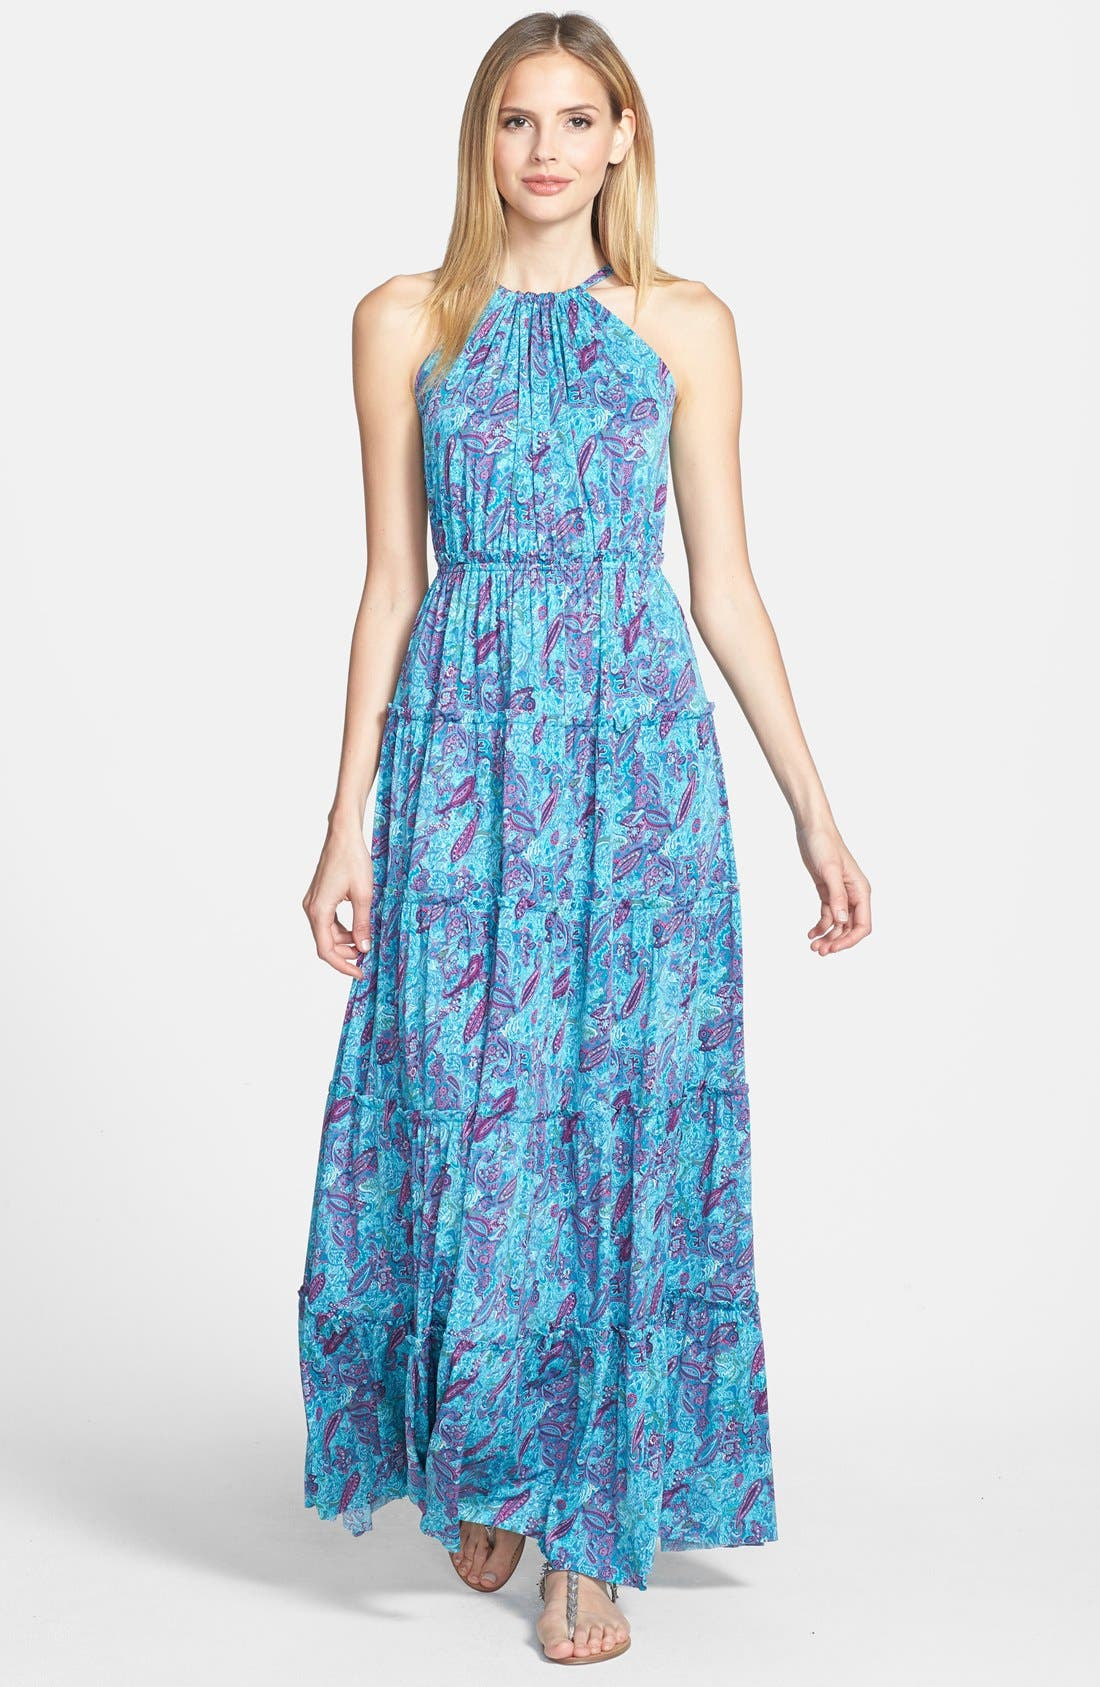 Alternate Image 1 Selected - Tbags Los Angeles Print Tiered Maxi Dress